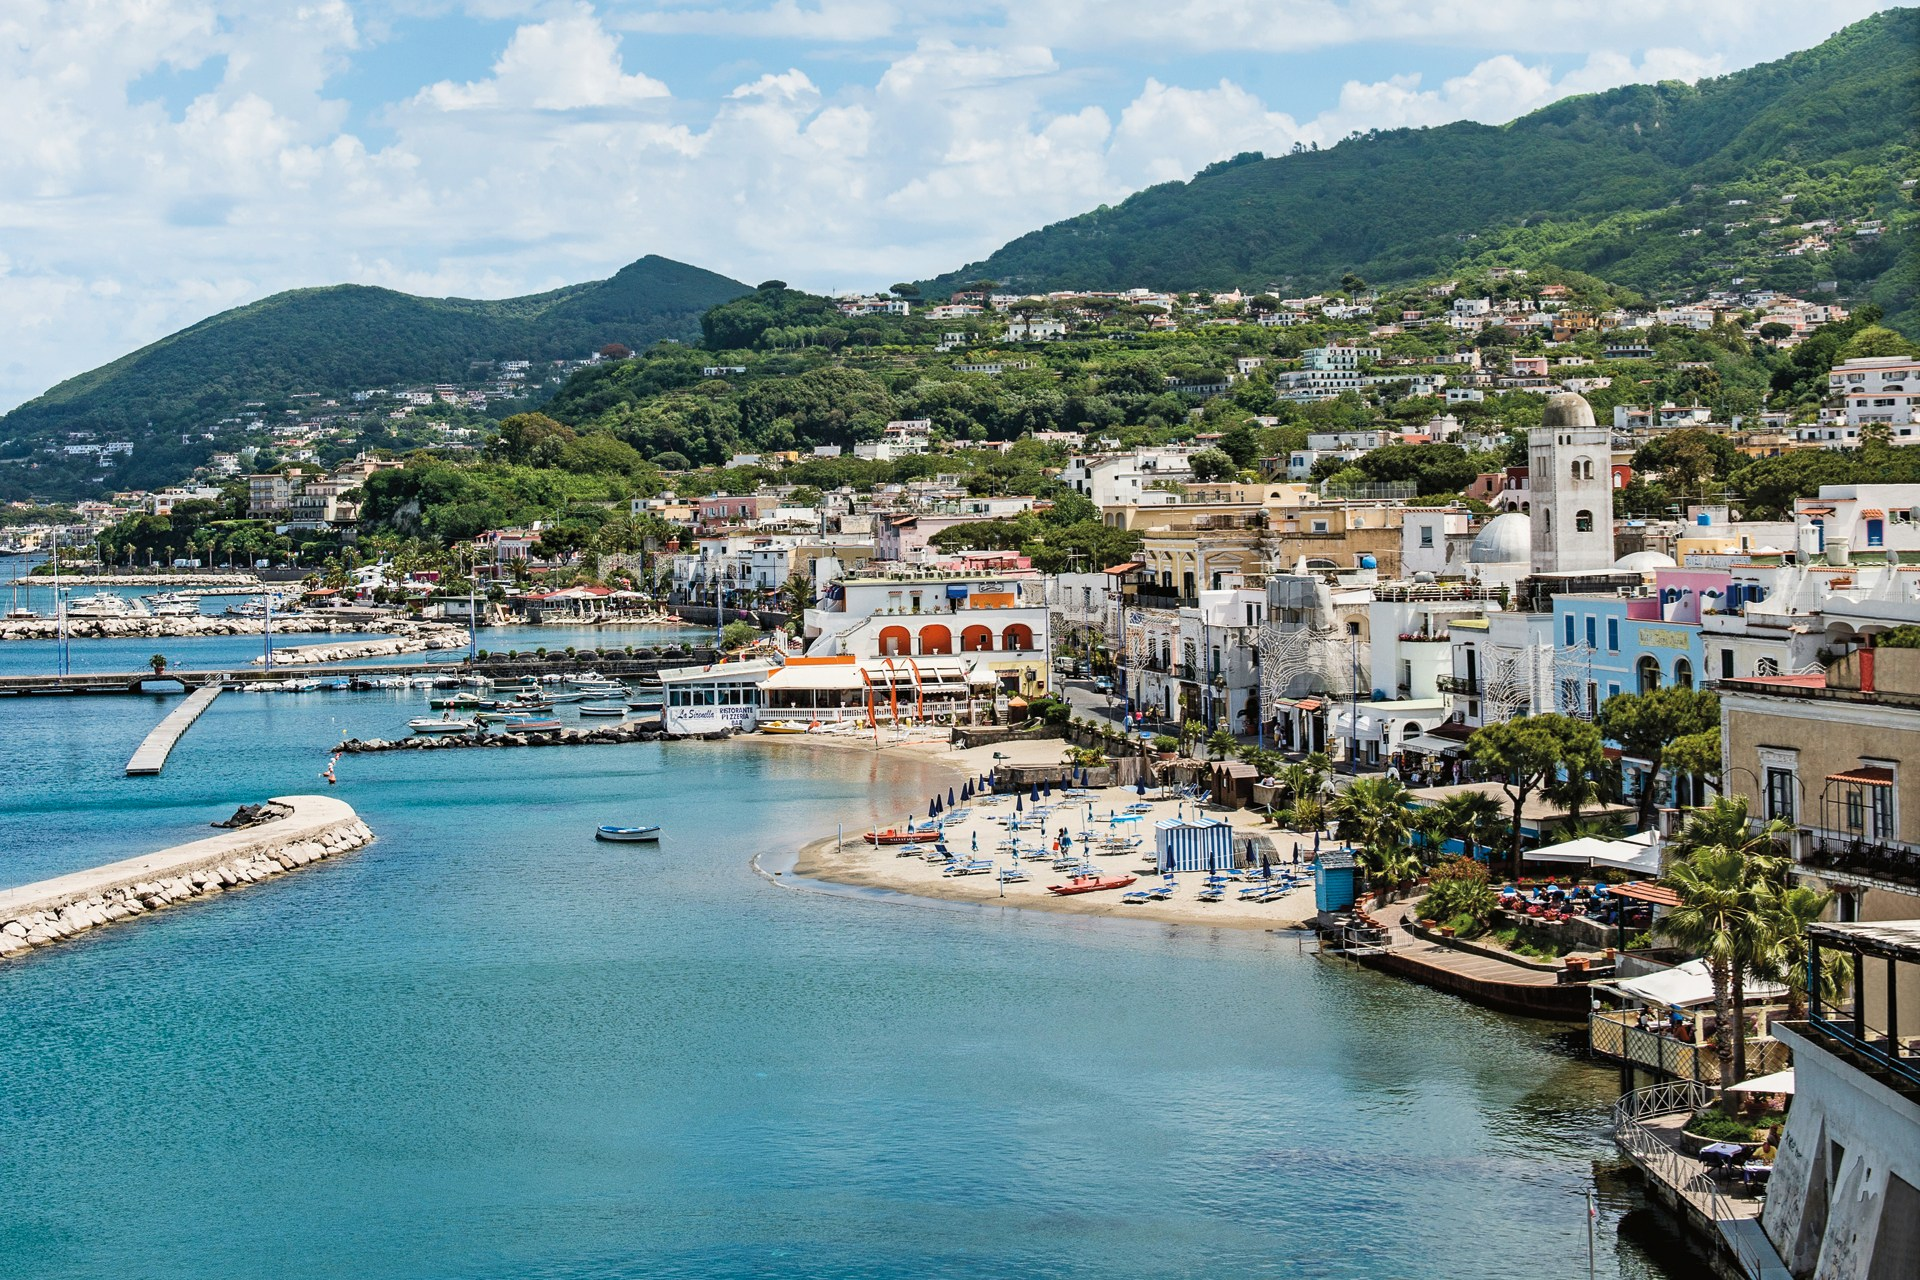 ISCHIA – OFFERTISSIME 2018 – Intercral Parma